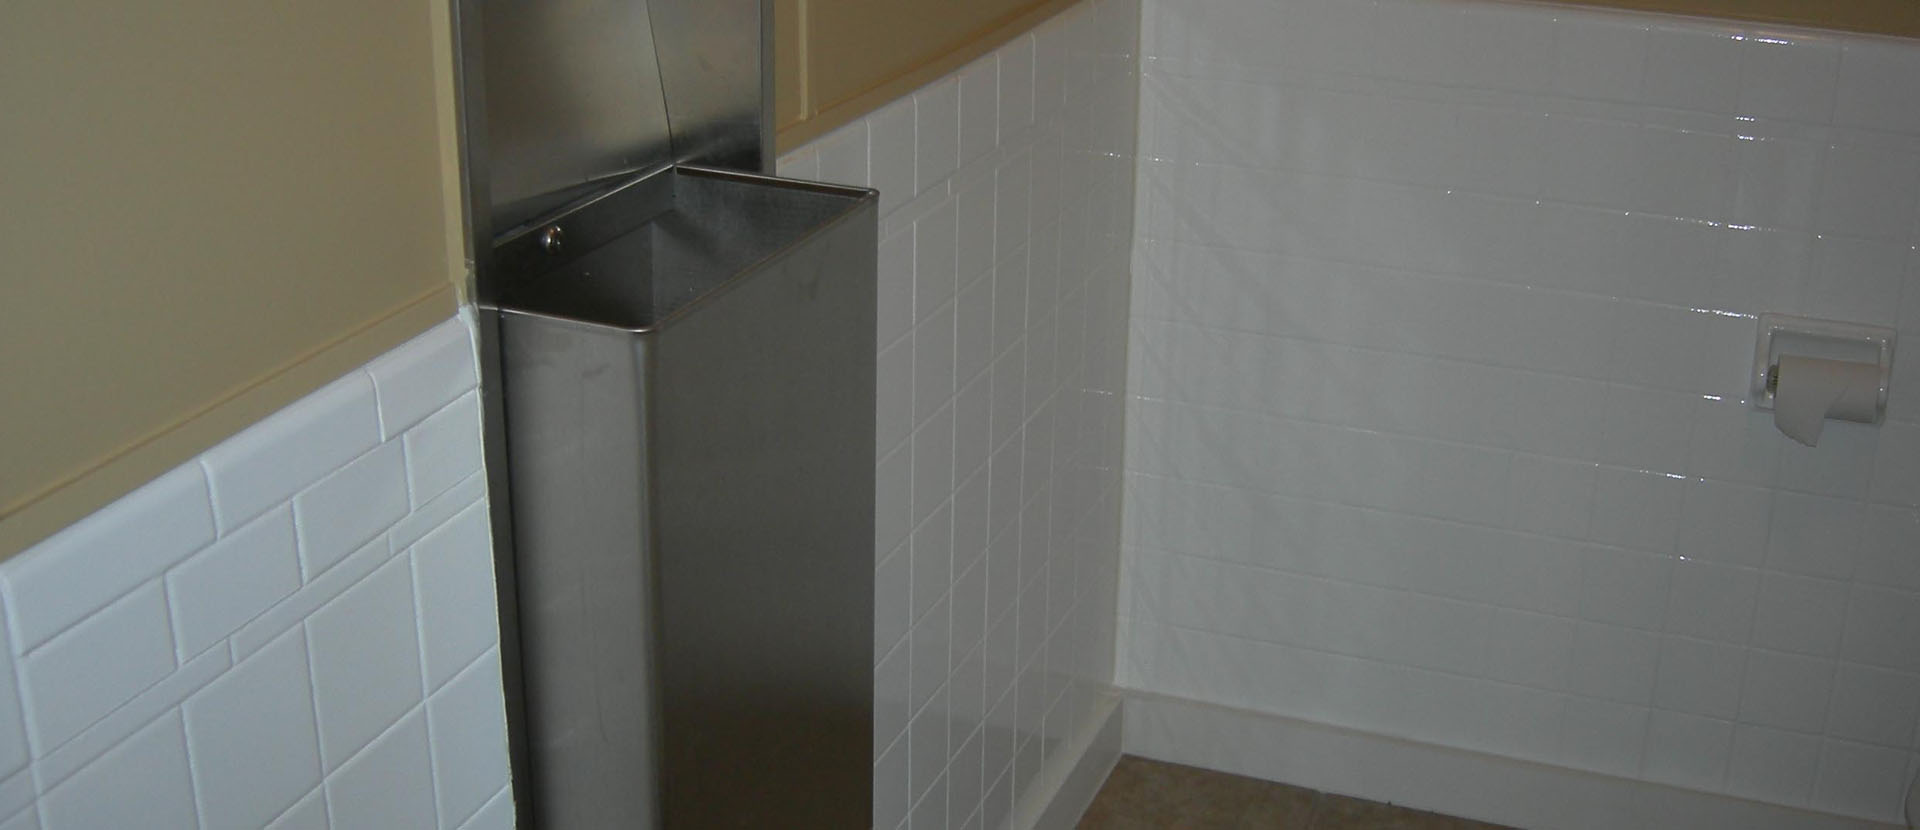 Gentil AAA Electrostatic Painting: Electrostatic Painting And Bathtub Refinishing  In Omaha, Lincoln And Des Moines